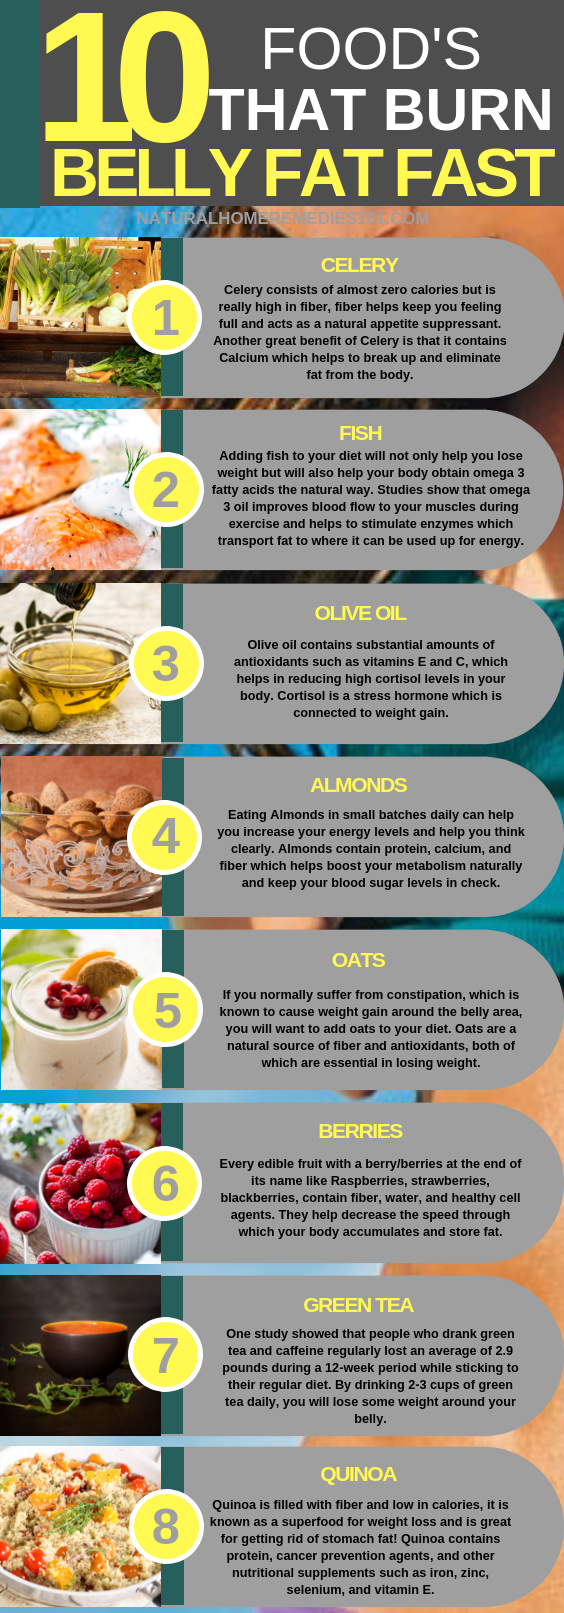 Miscreant Weight Loss Programs Water Recipes #dietstartstomorrow #WeightLossProgramsLowCarb #exercis...